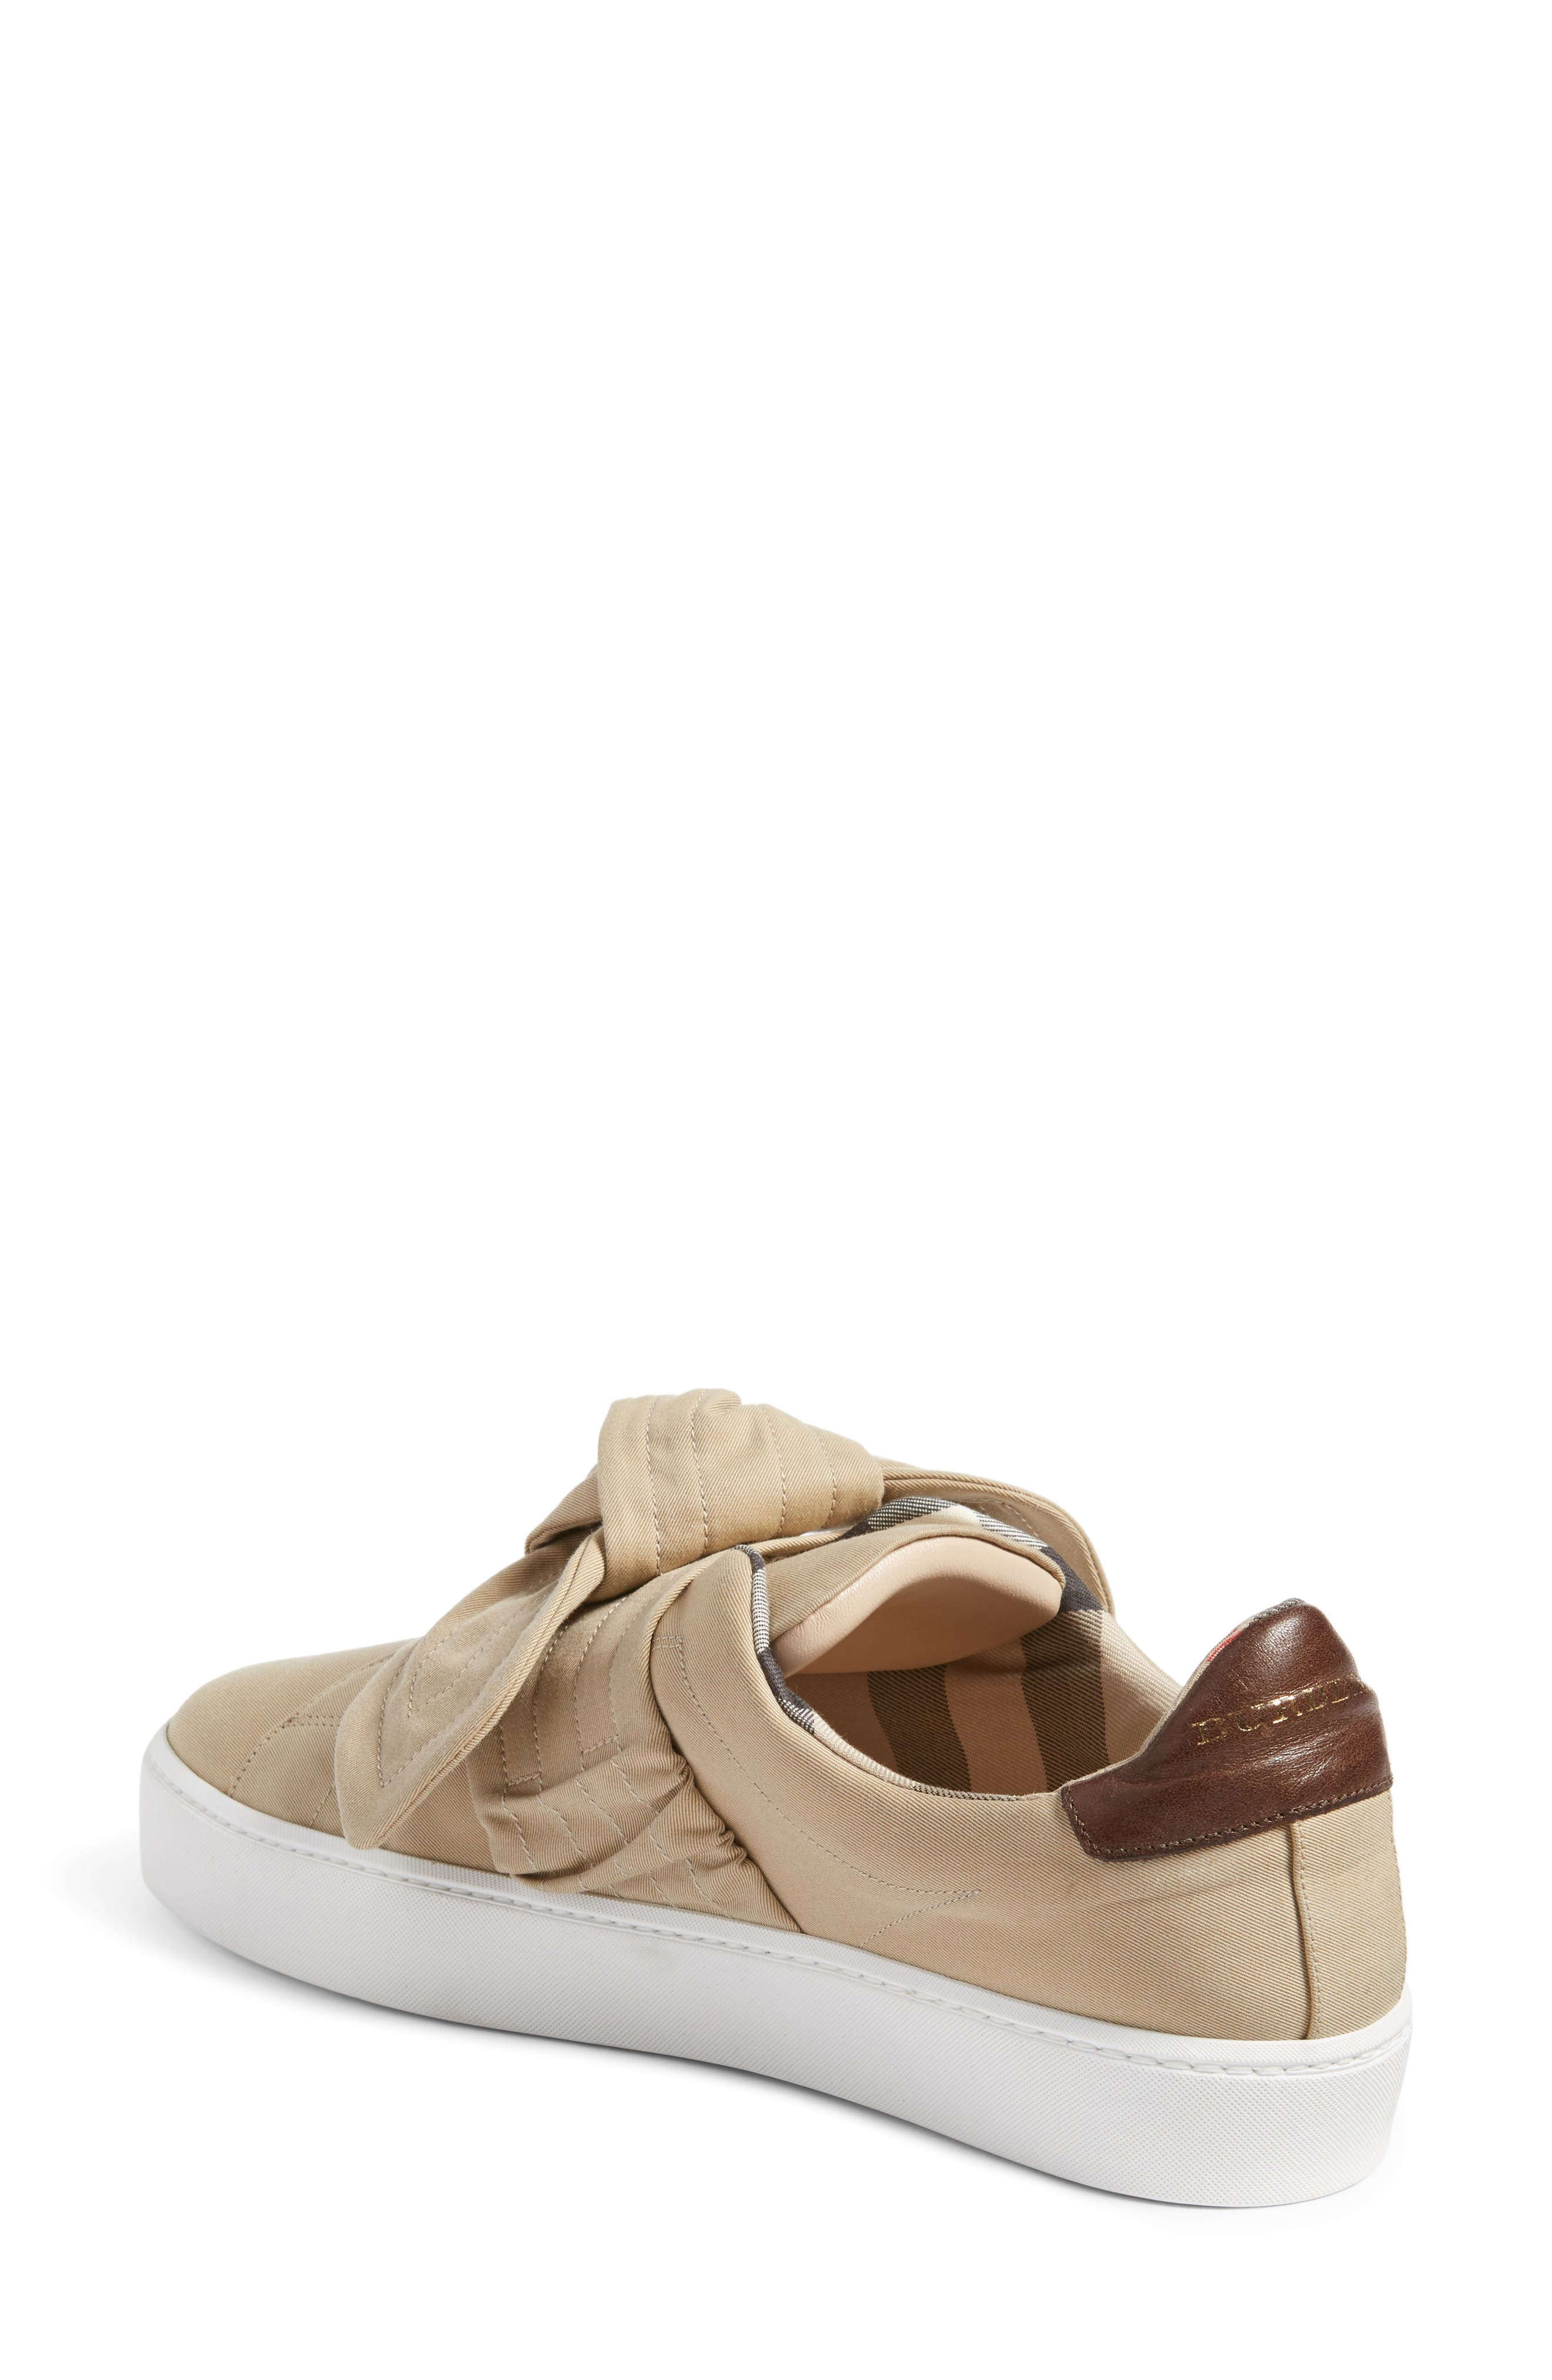 Alternate Image 2  - Burberry Knot Sneaker (Women)